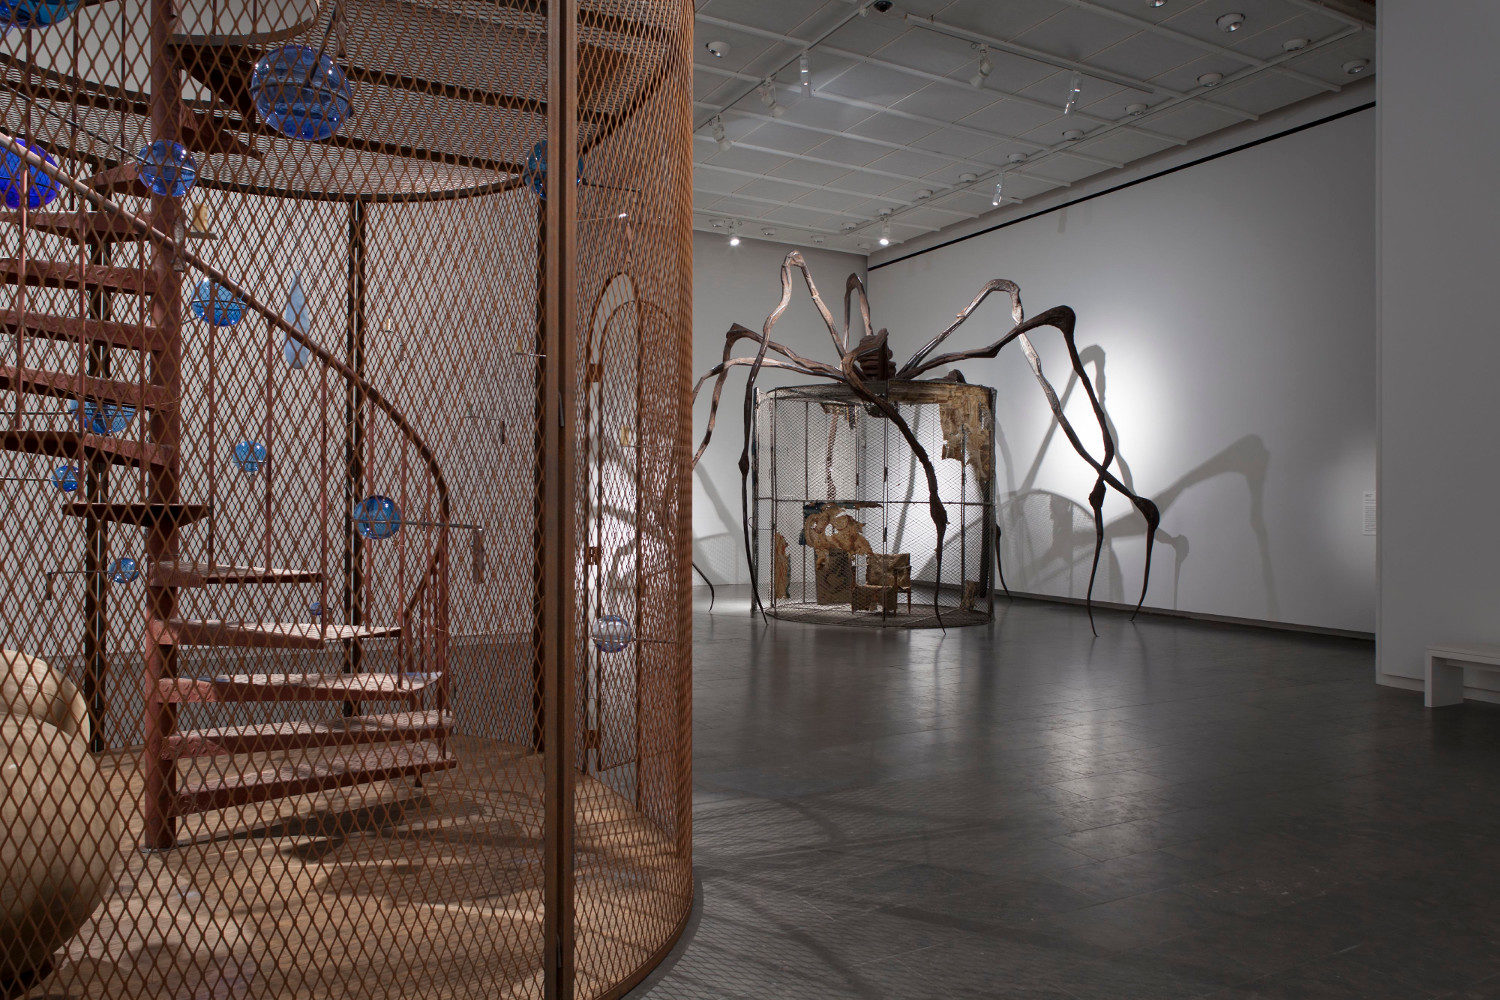 Louise Bourgeois – Structures of Existence: The Cells - AWARE Artistes femmes / women artists